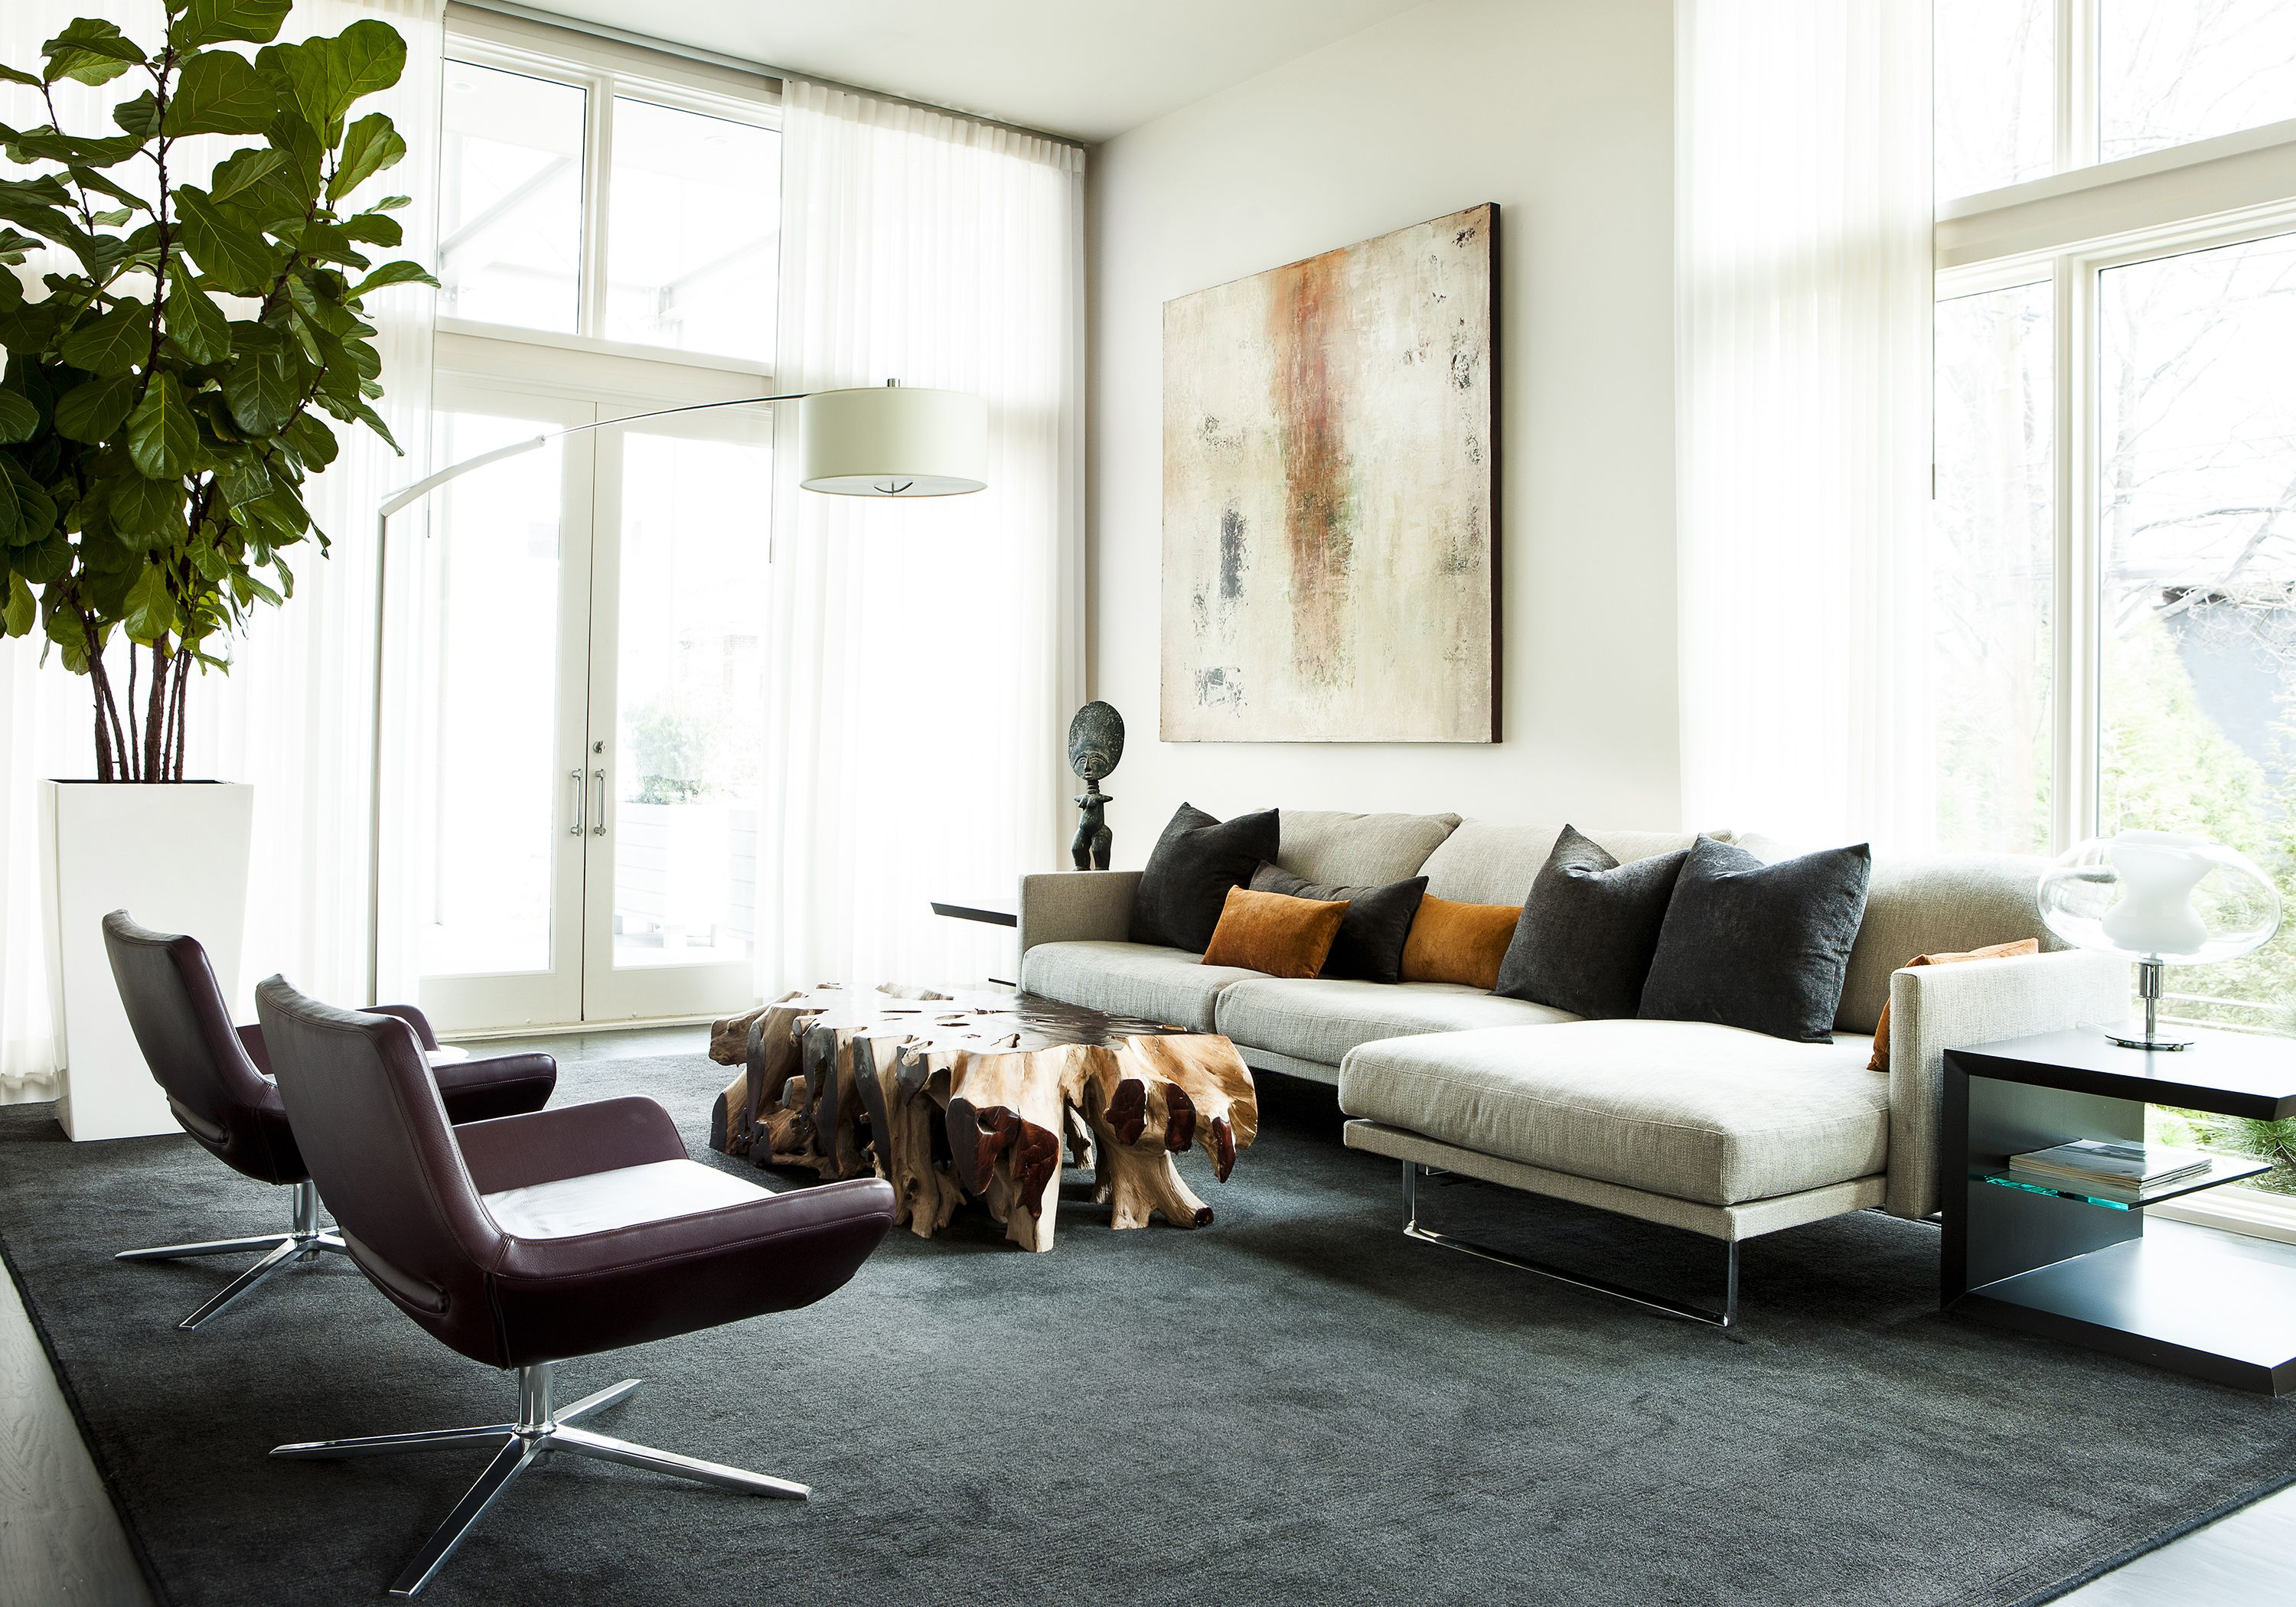 room design neutral blog budget and living with final small henderson an modern sectional emily eclectic